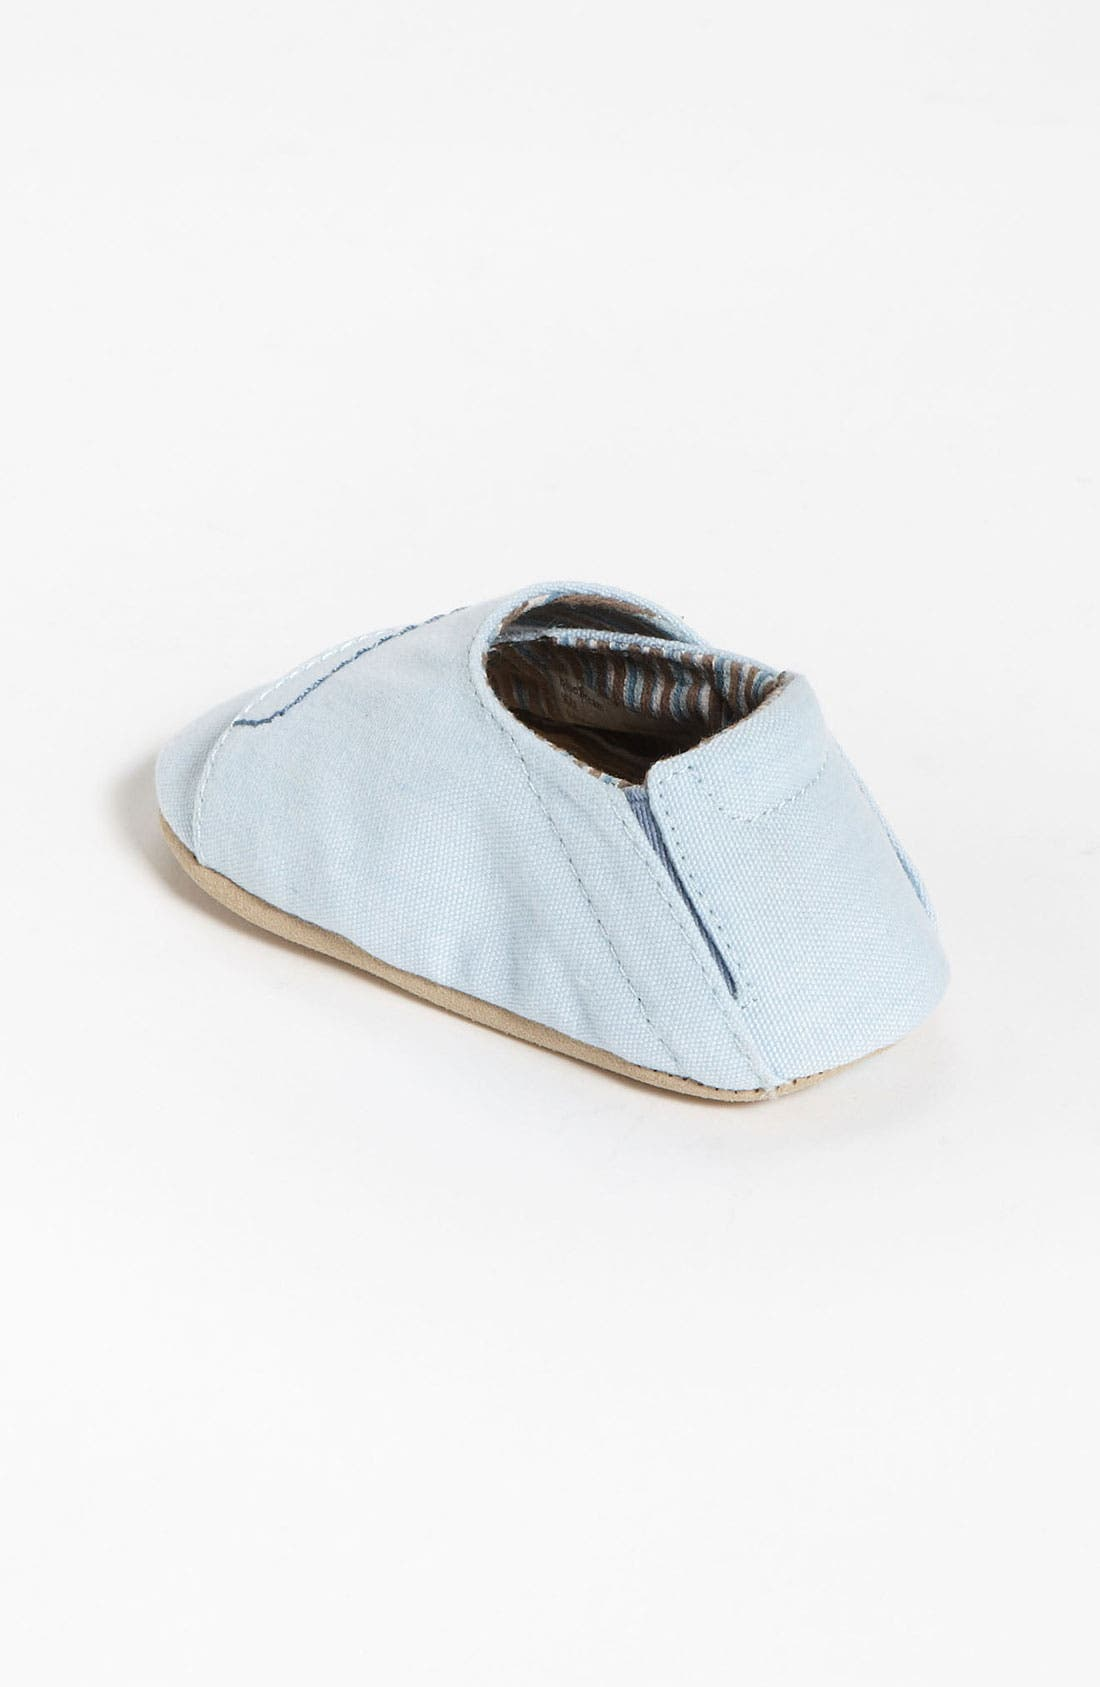 Alternate Image 2  - Stride Rite 'Blue Dream' Crib Shoe (Baby)